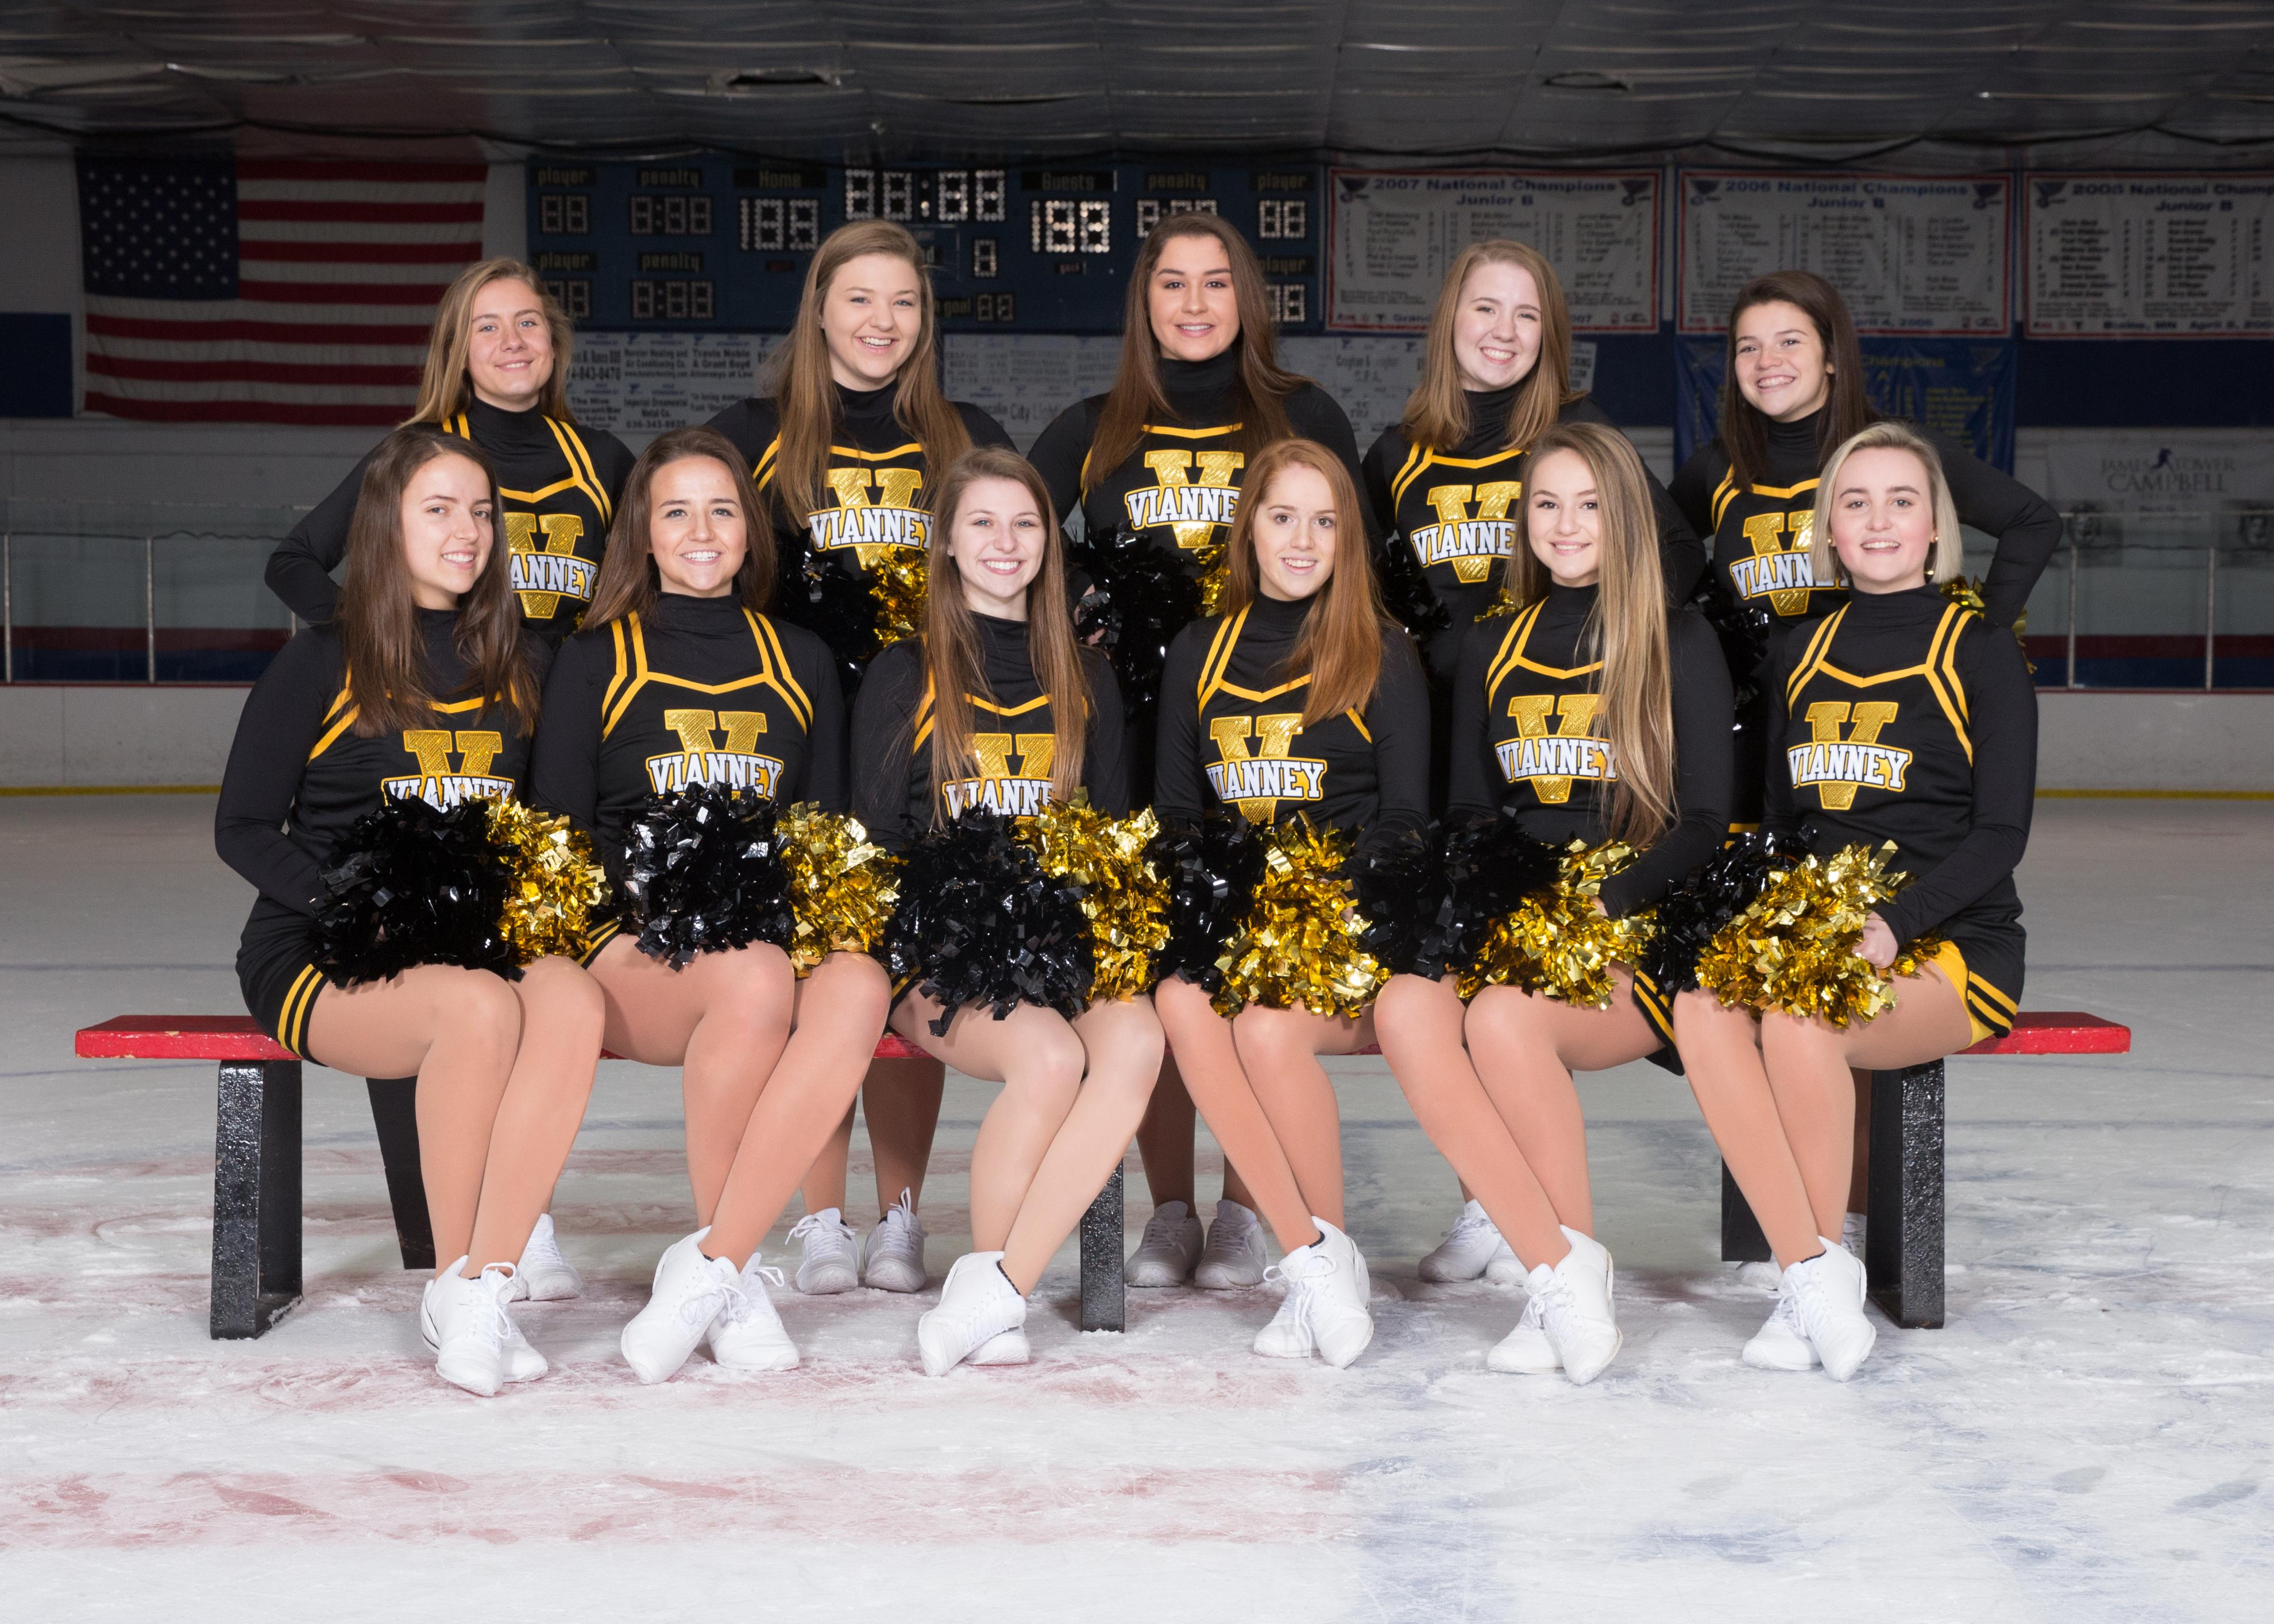 Duchesne High School Ice Hockey Vianney Hockey Cheerleaders